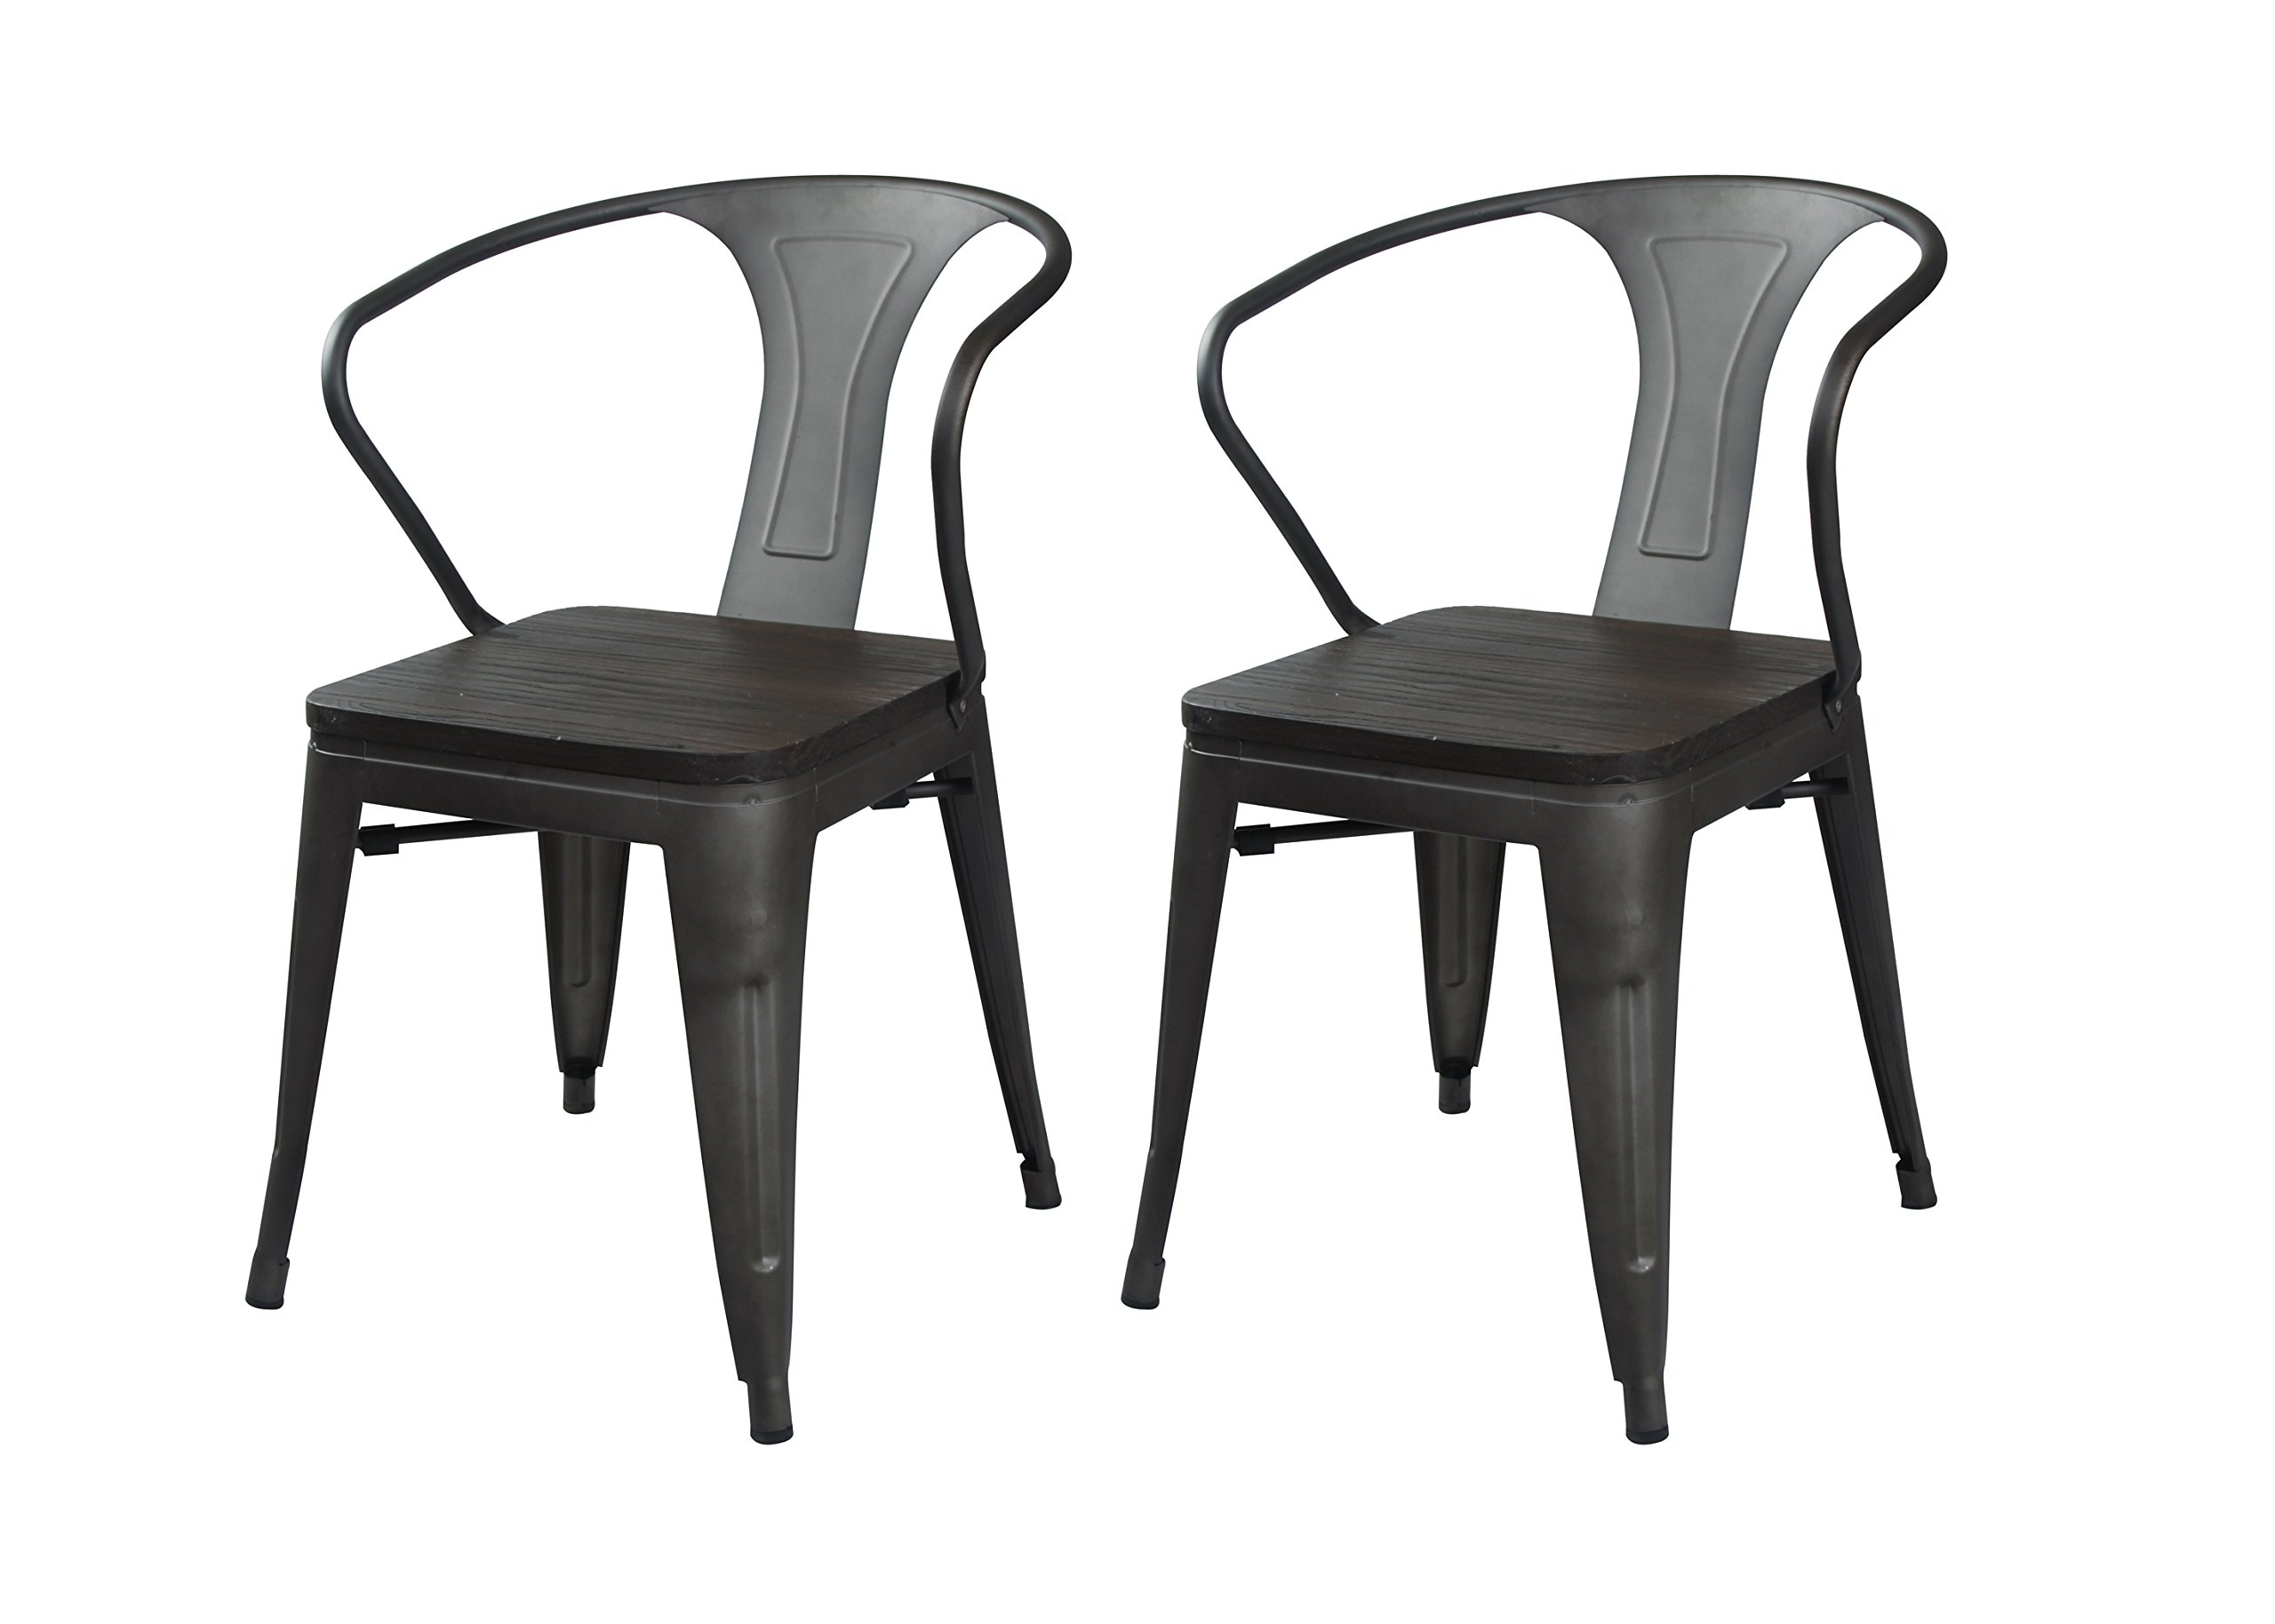 living chair products furniture bistro collection table chairs outdoor dsc next tolix velvet